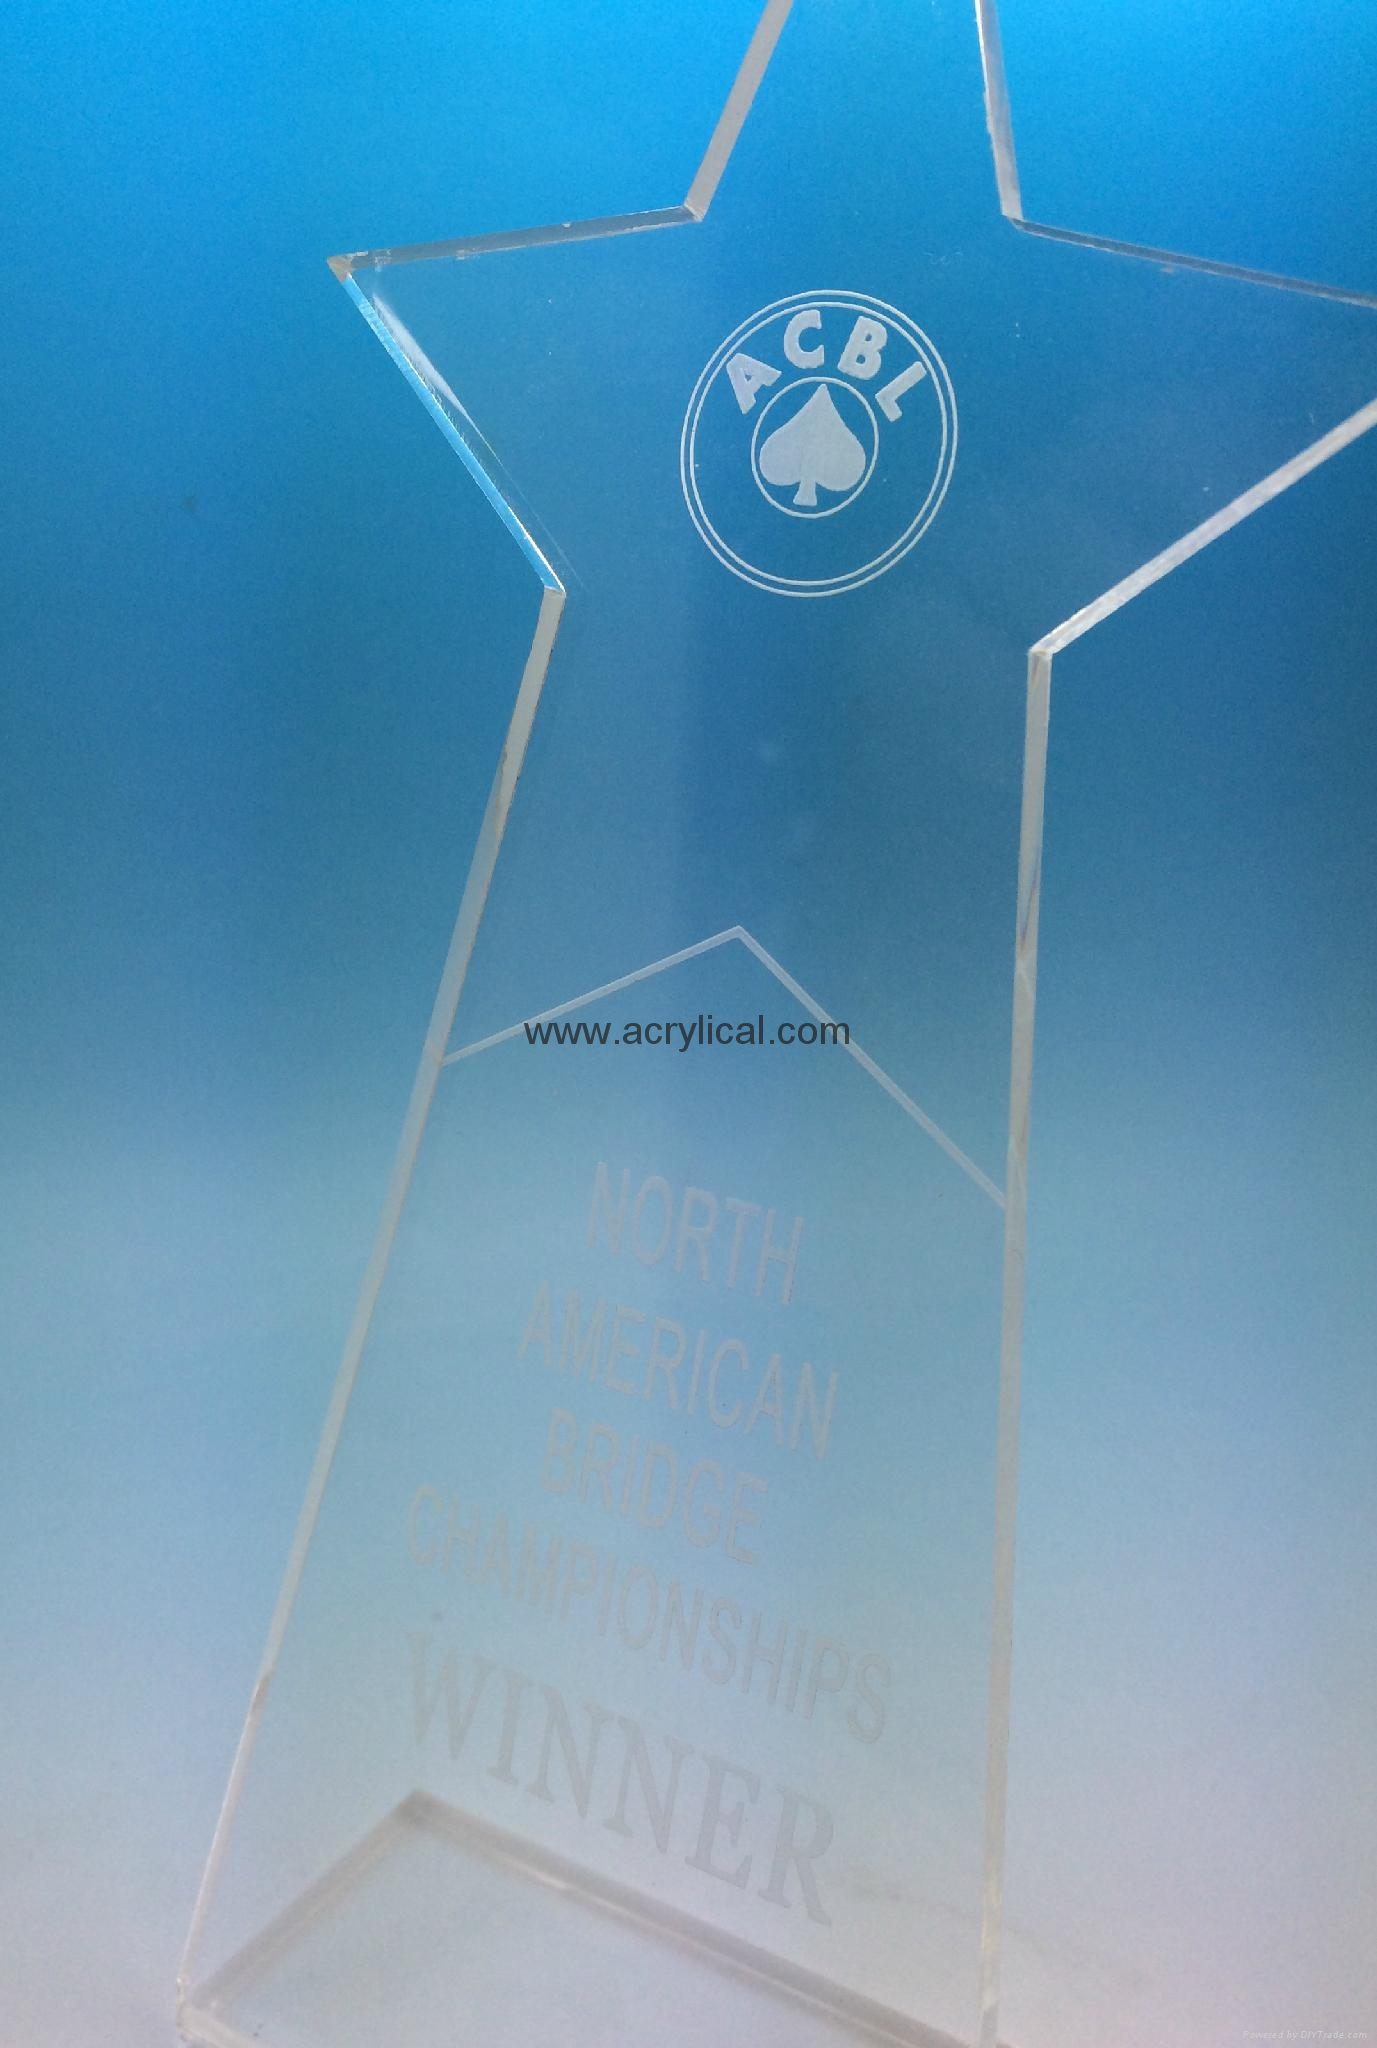 Acrylic Awards, Recognition Plaques, Corporate Awards,  Military Plaques, Religious Awards